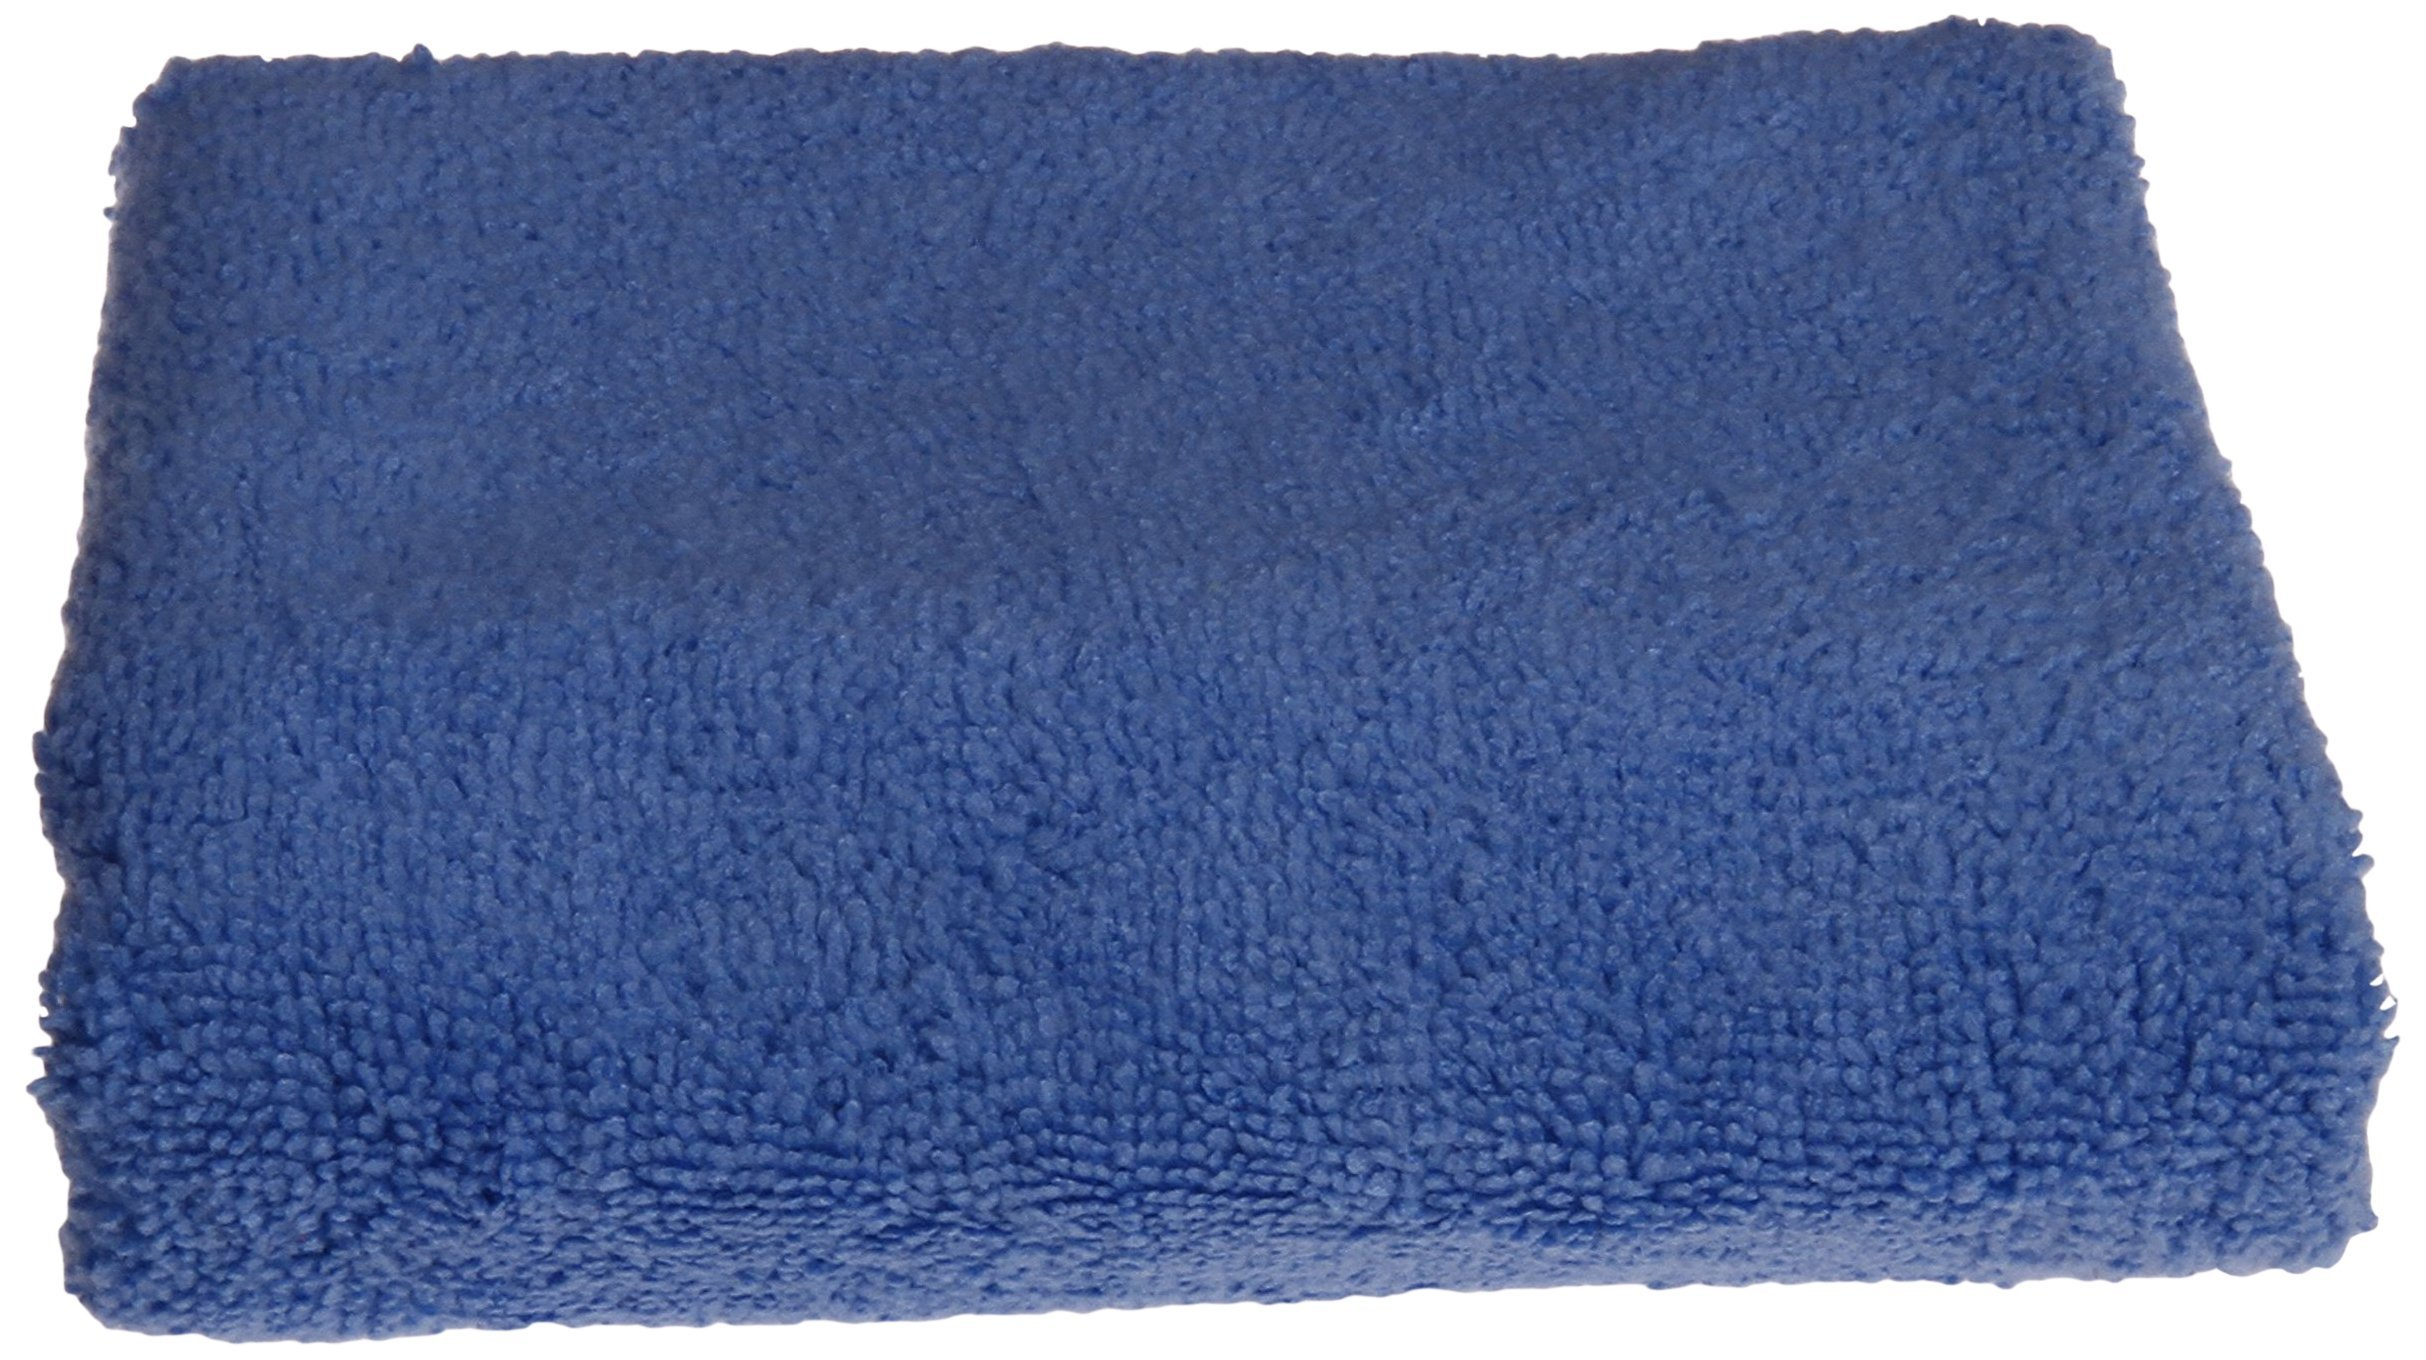 UTowels Microfiber Plush Drying Towels, Blue, 6 Piece